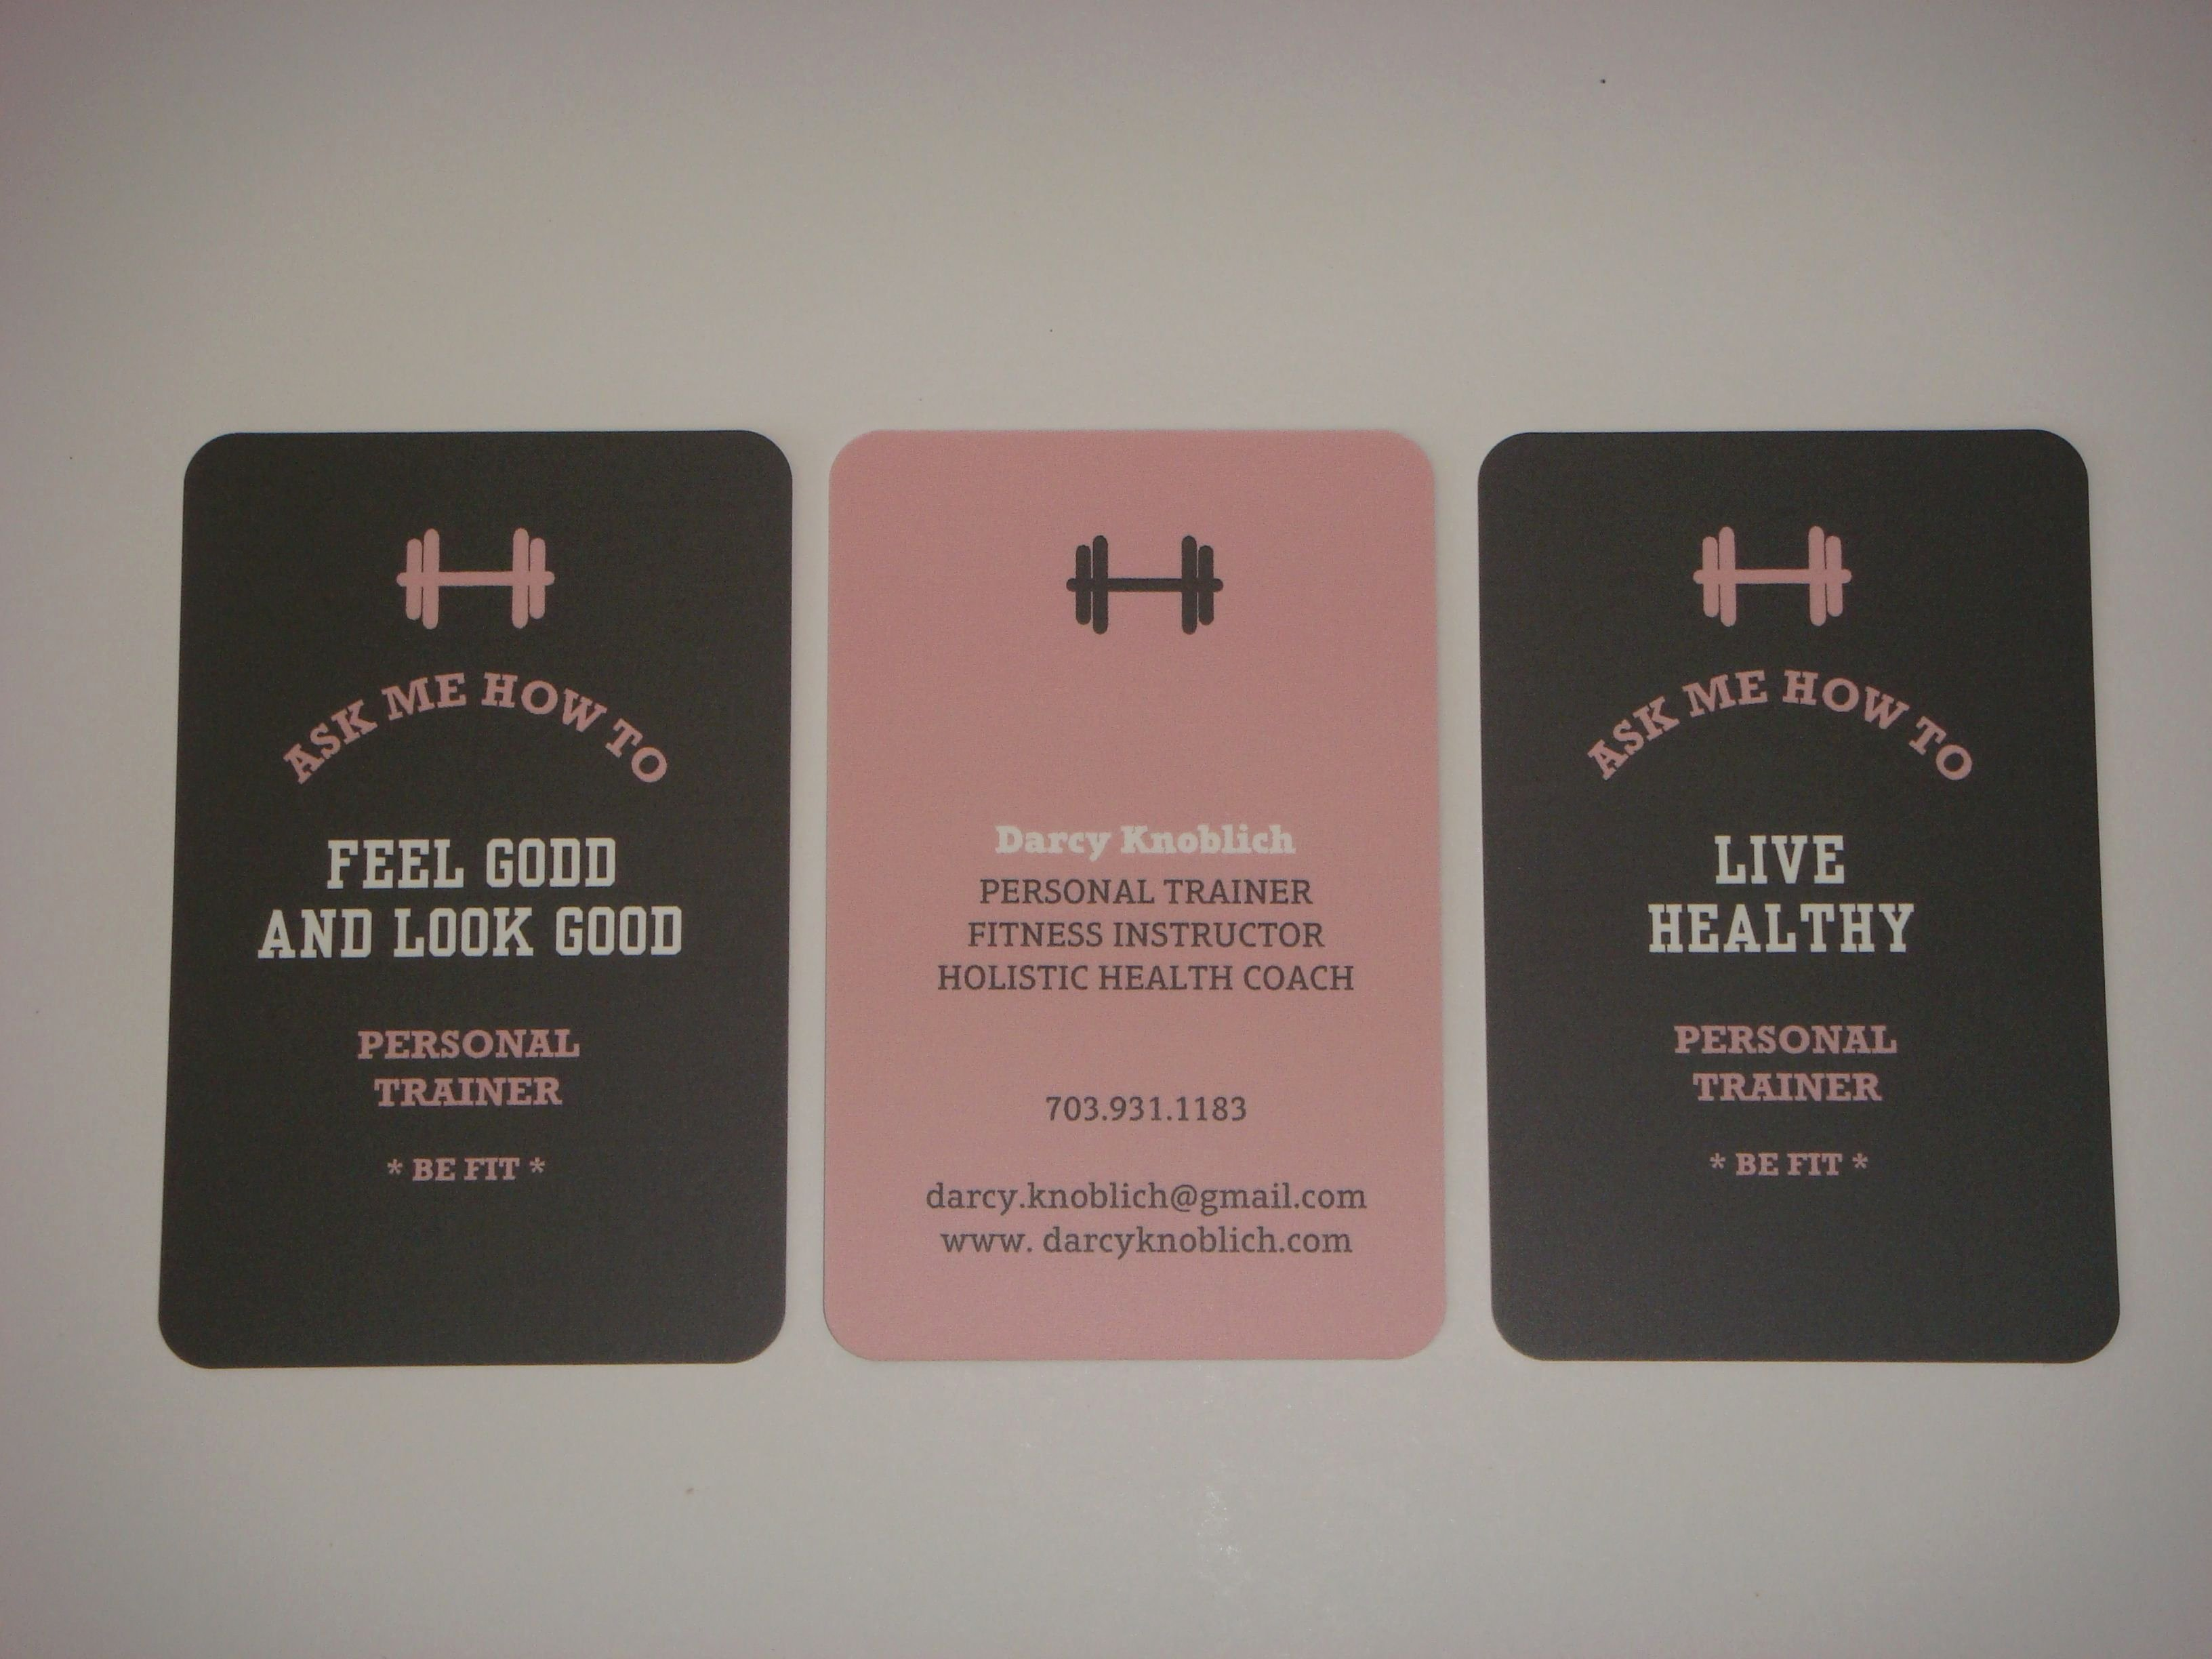 Personal Trainer Business Card Lovely Best 25 Personal Trainer Business Cards Ideas On Pinterest